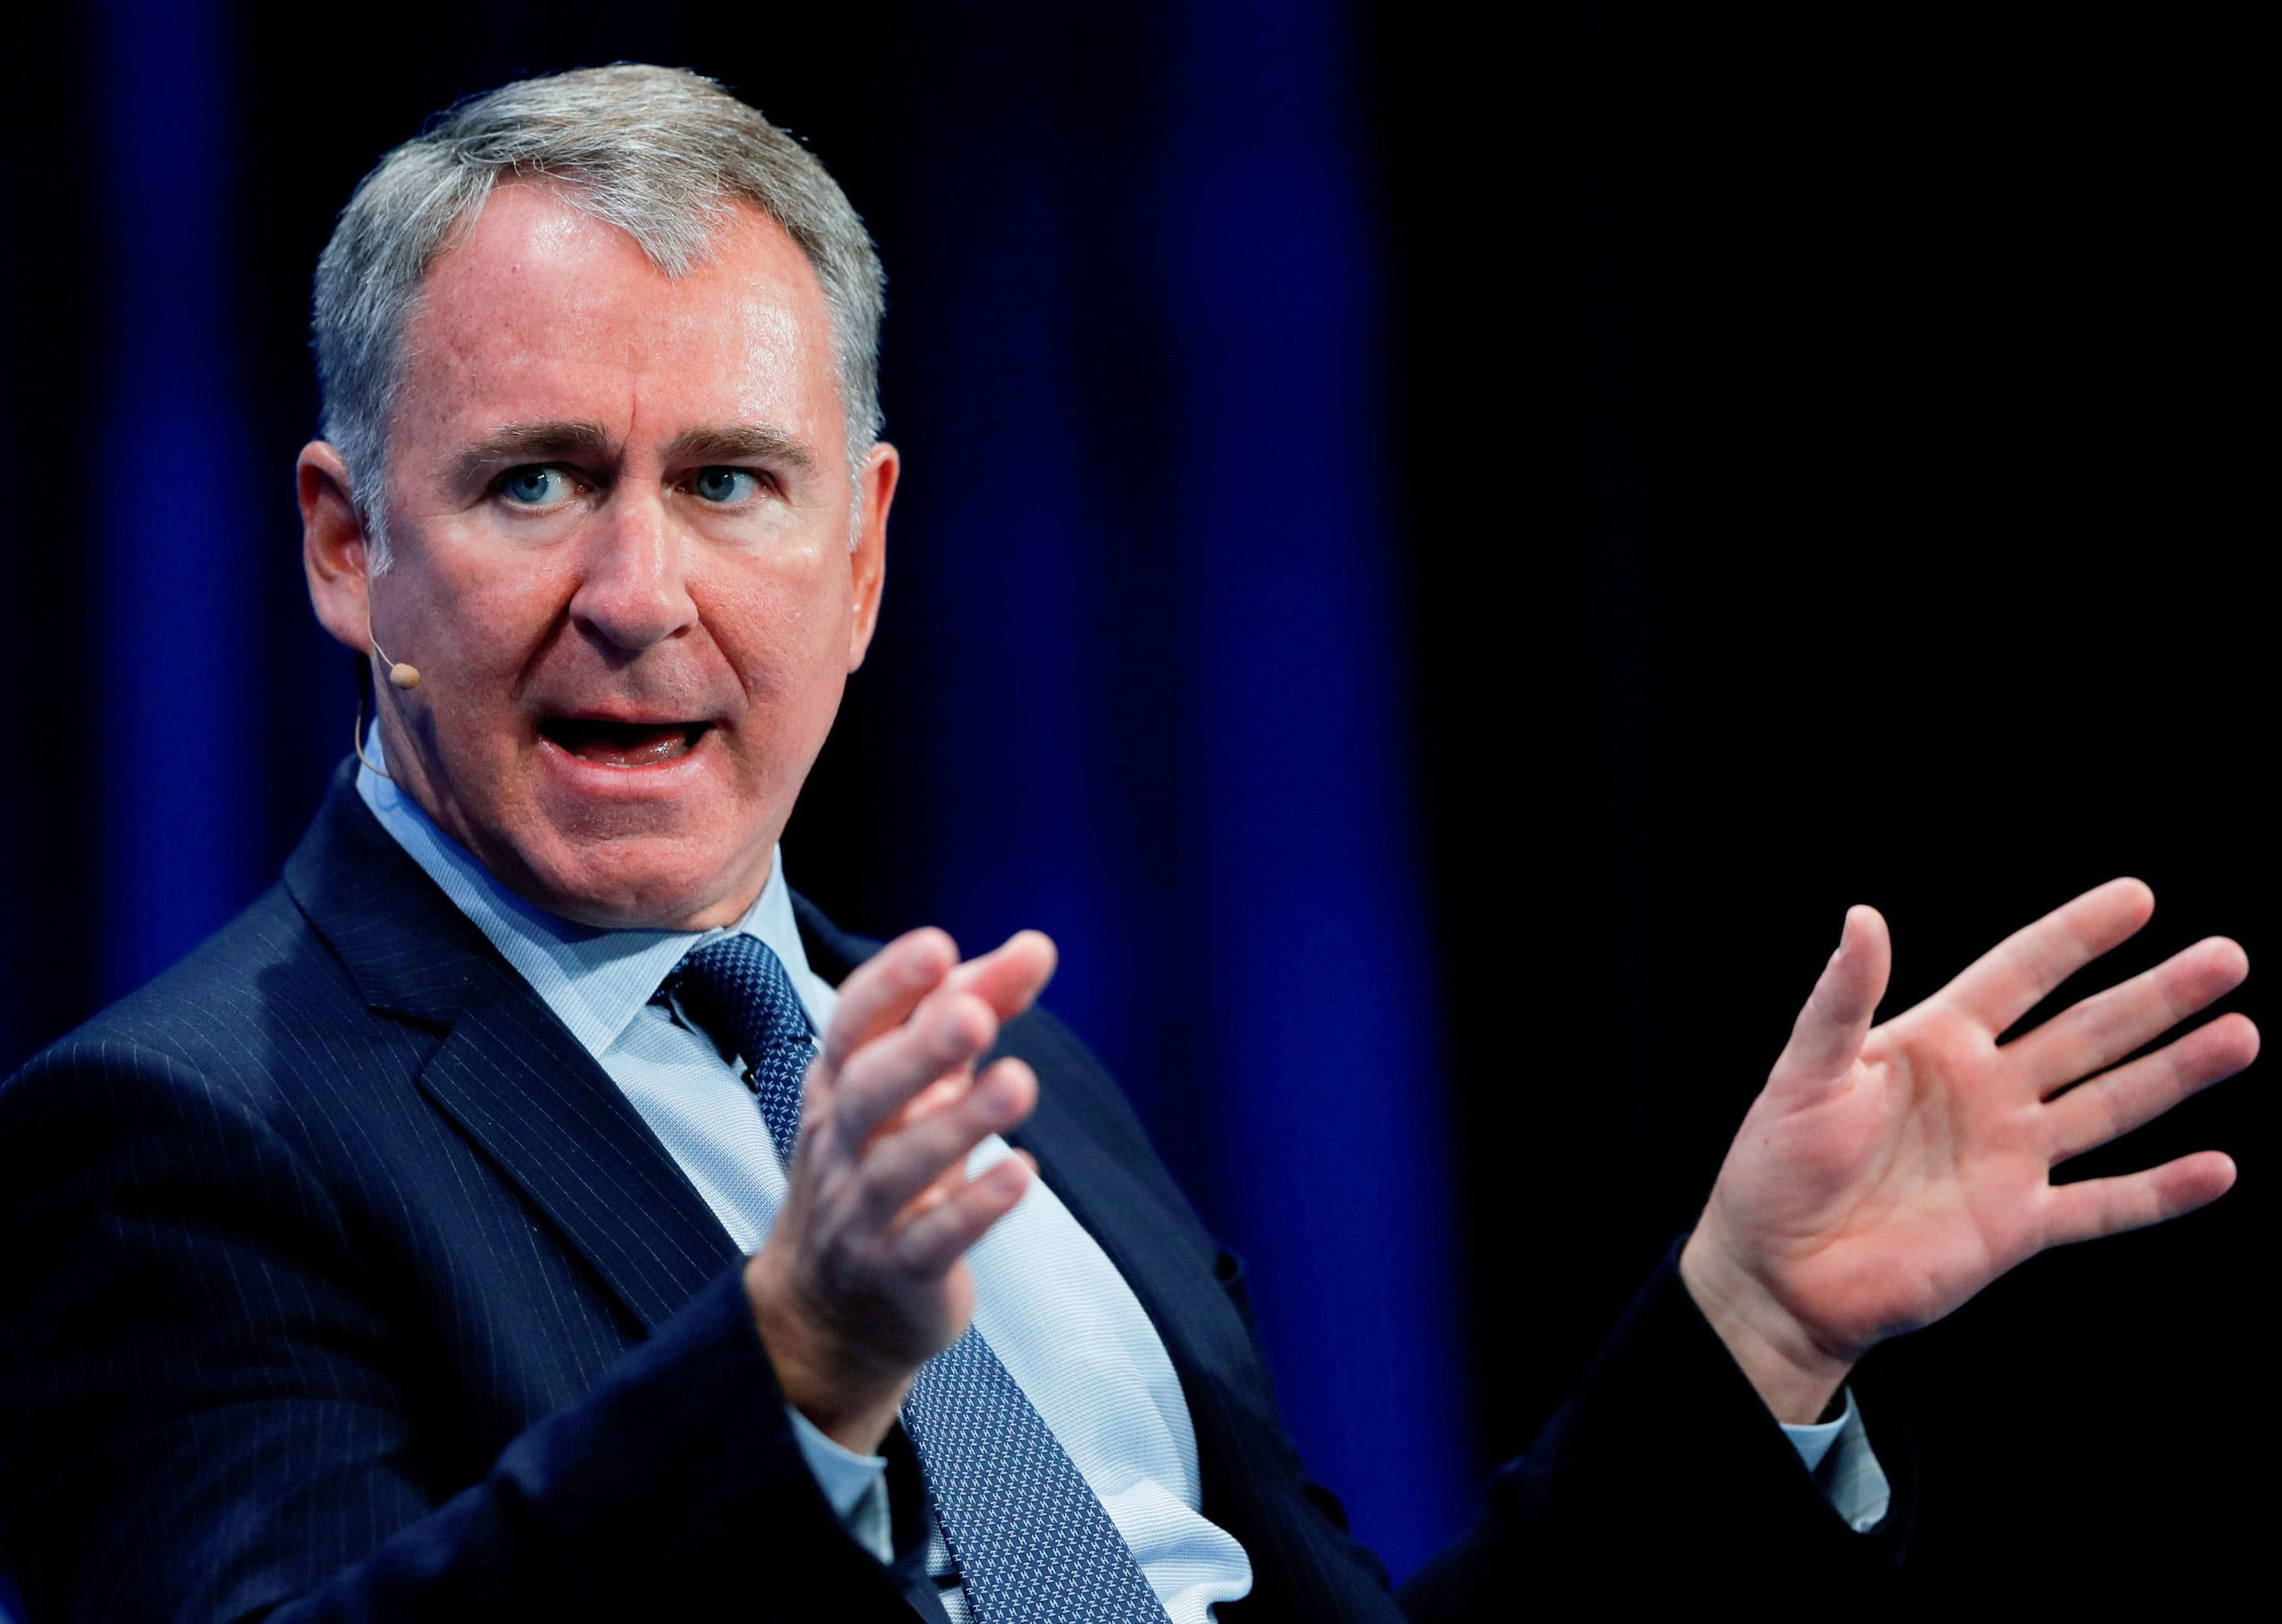 'Flat out false' — Ken Griffin says Citadel doesn't use personal information from retail investors - CNBC